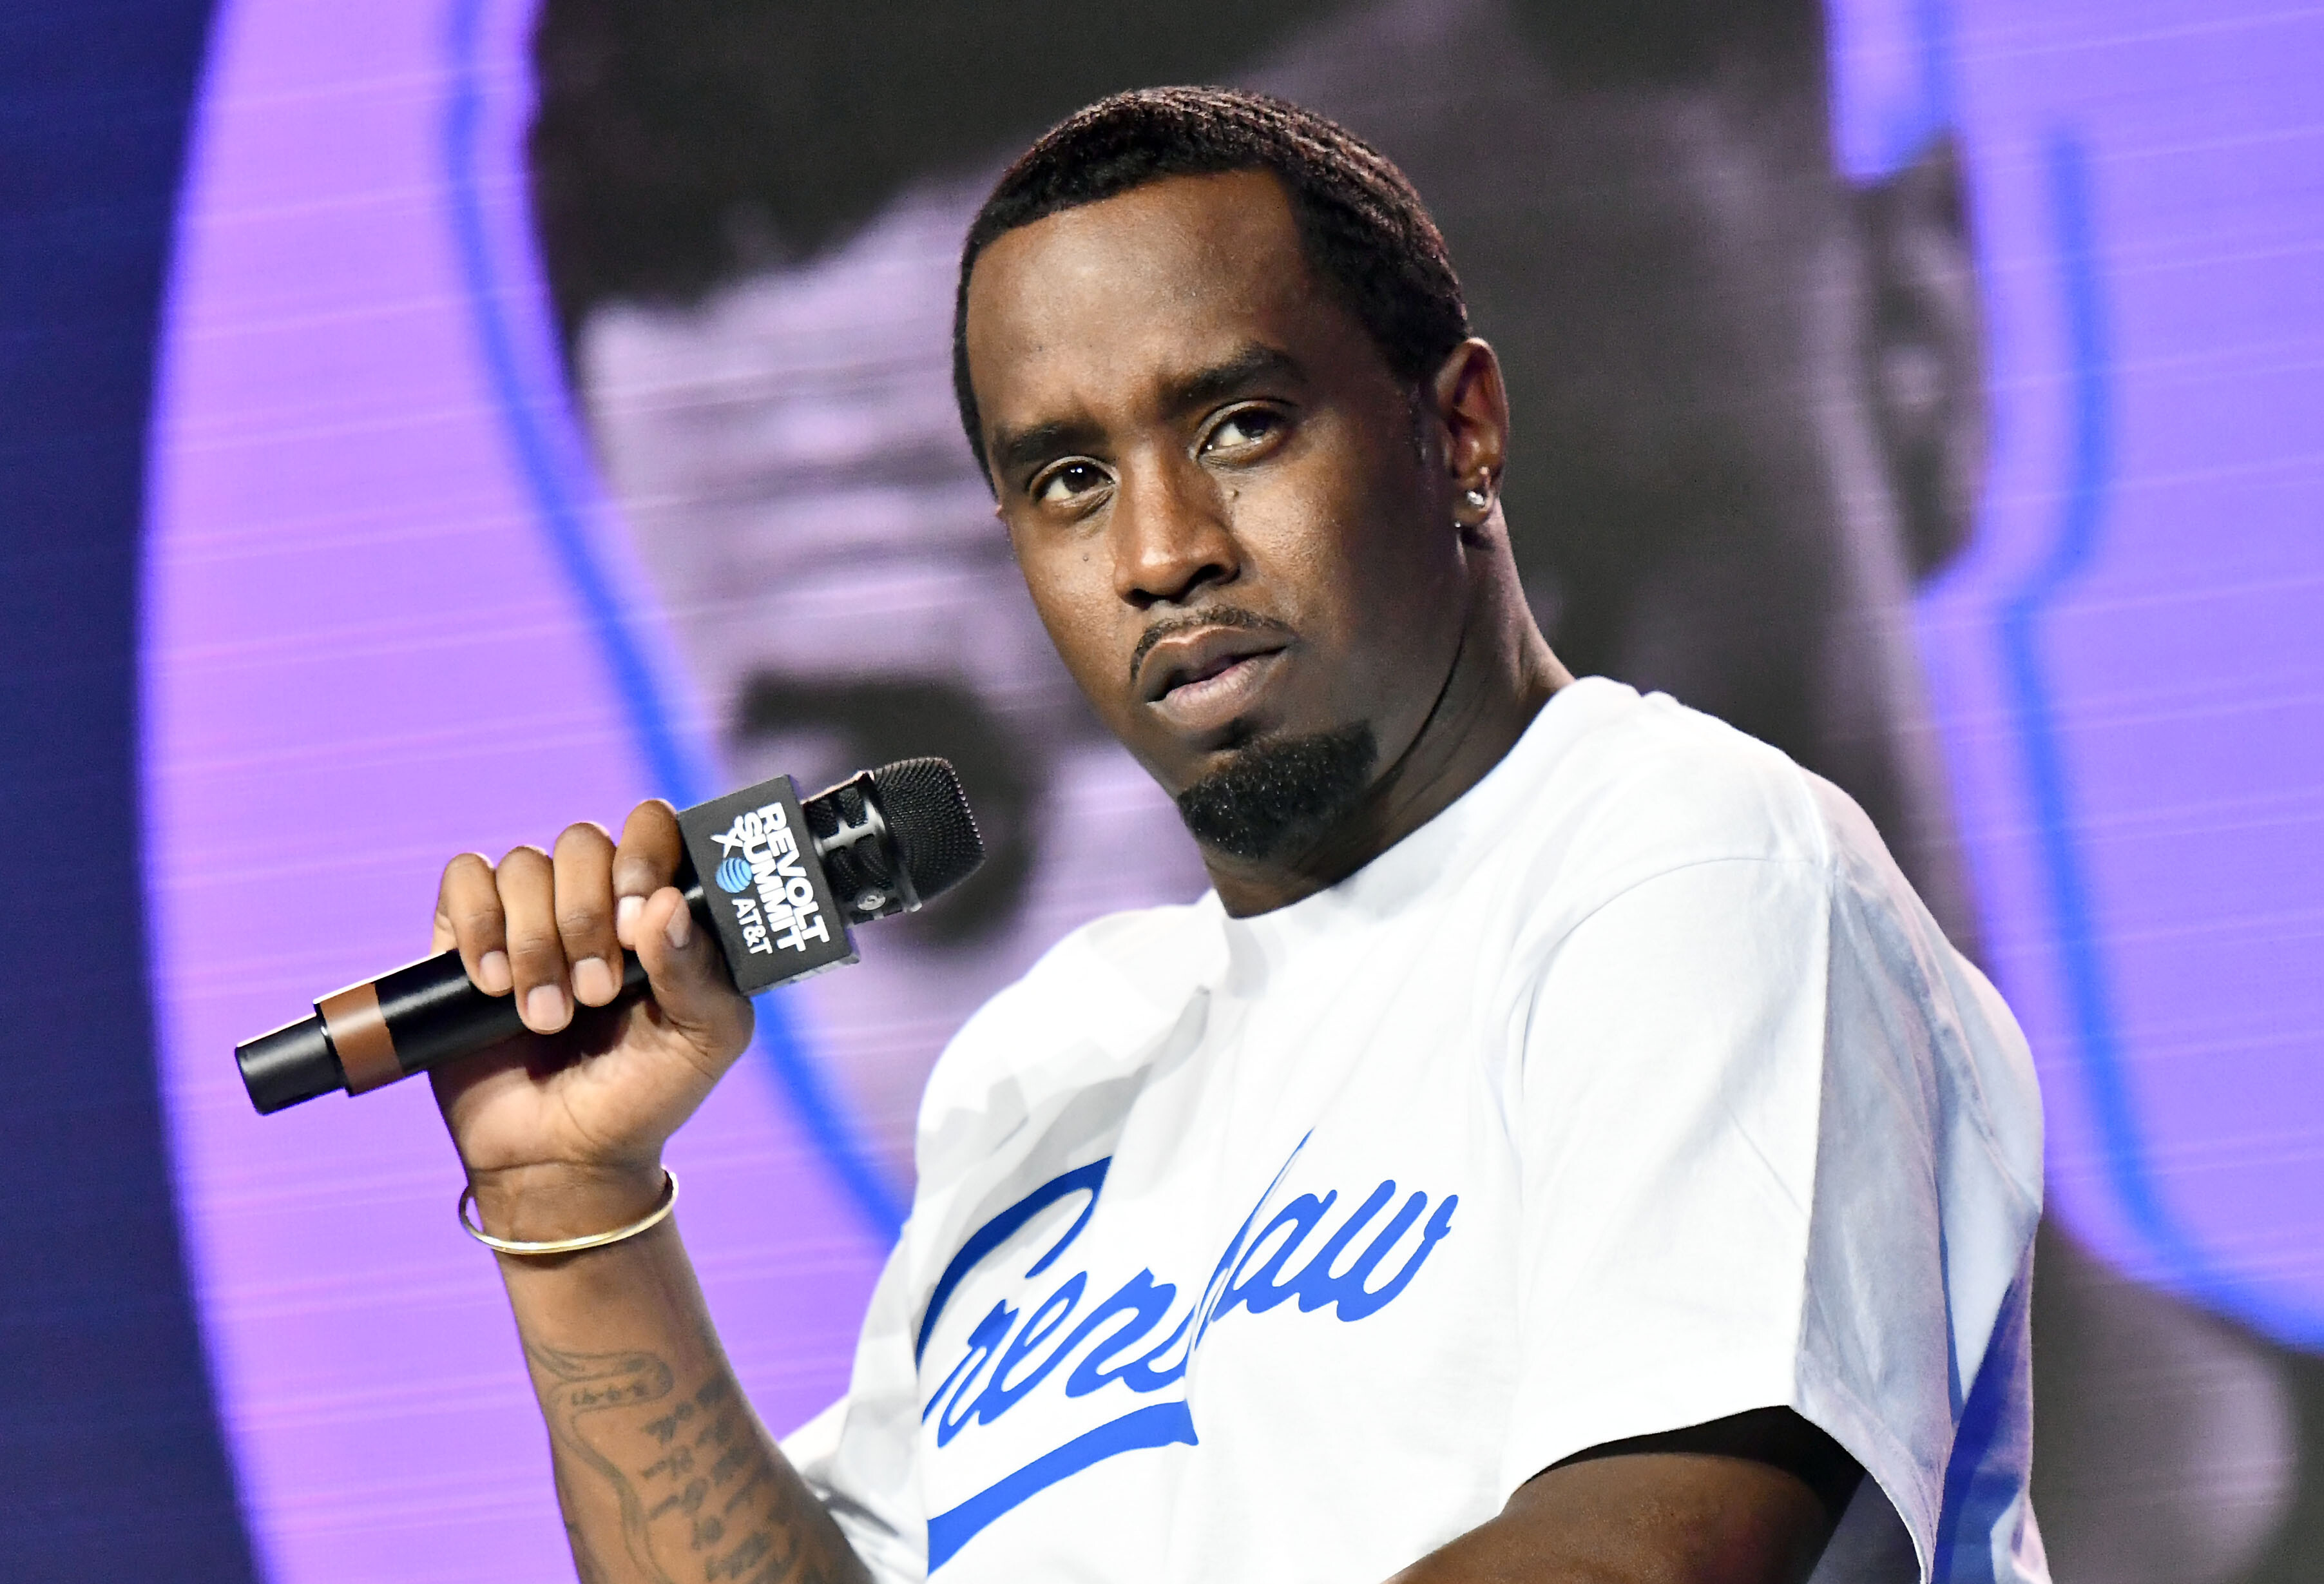 Sean Combs on life without Kim Porter and posting that throwback Jennifer Lopez photo